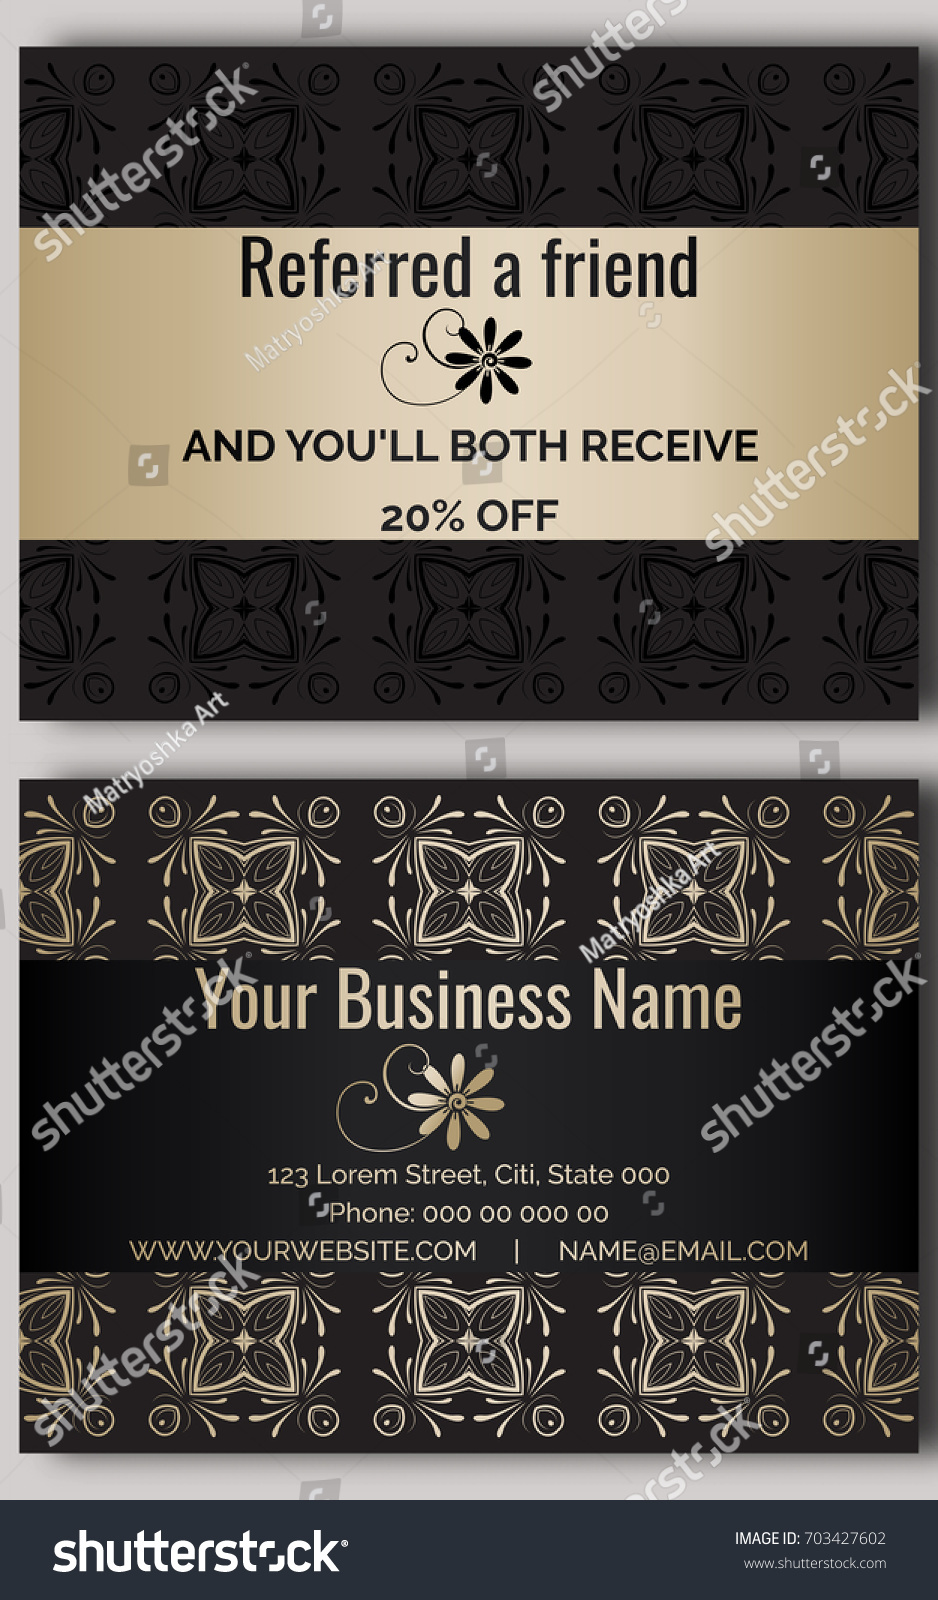 Moo business cards coupon image collections free business cards business card discount images free business cards business card black gold discount coupon stock vector 703427602 magicingreecefo Gallery